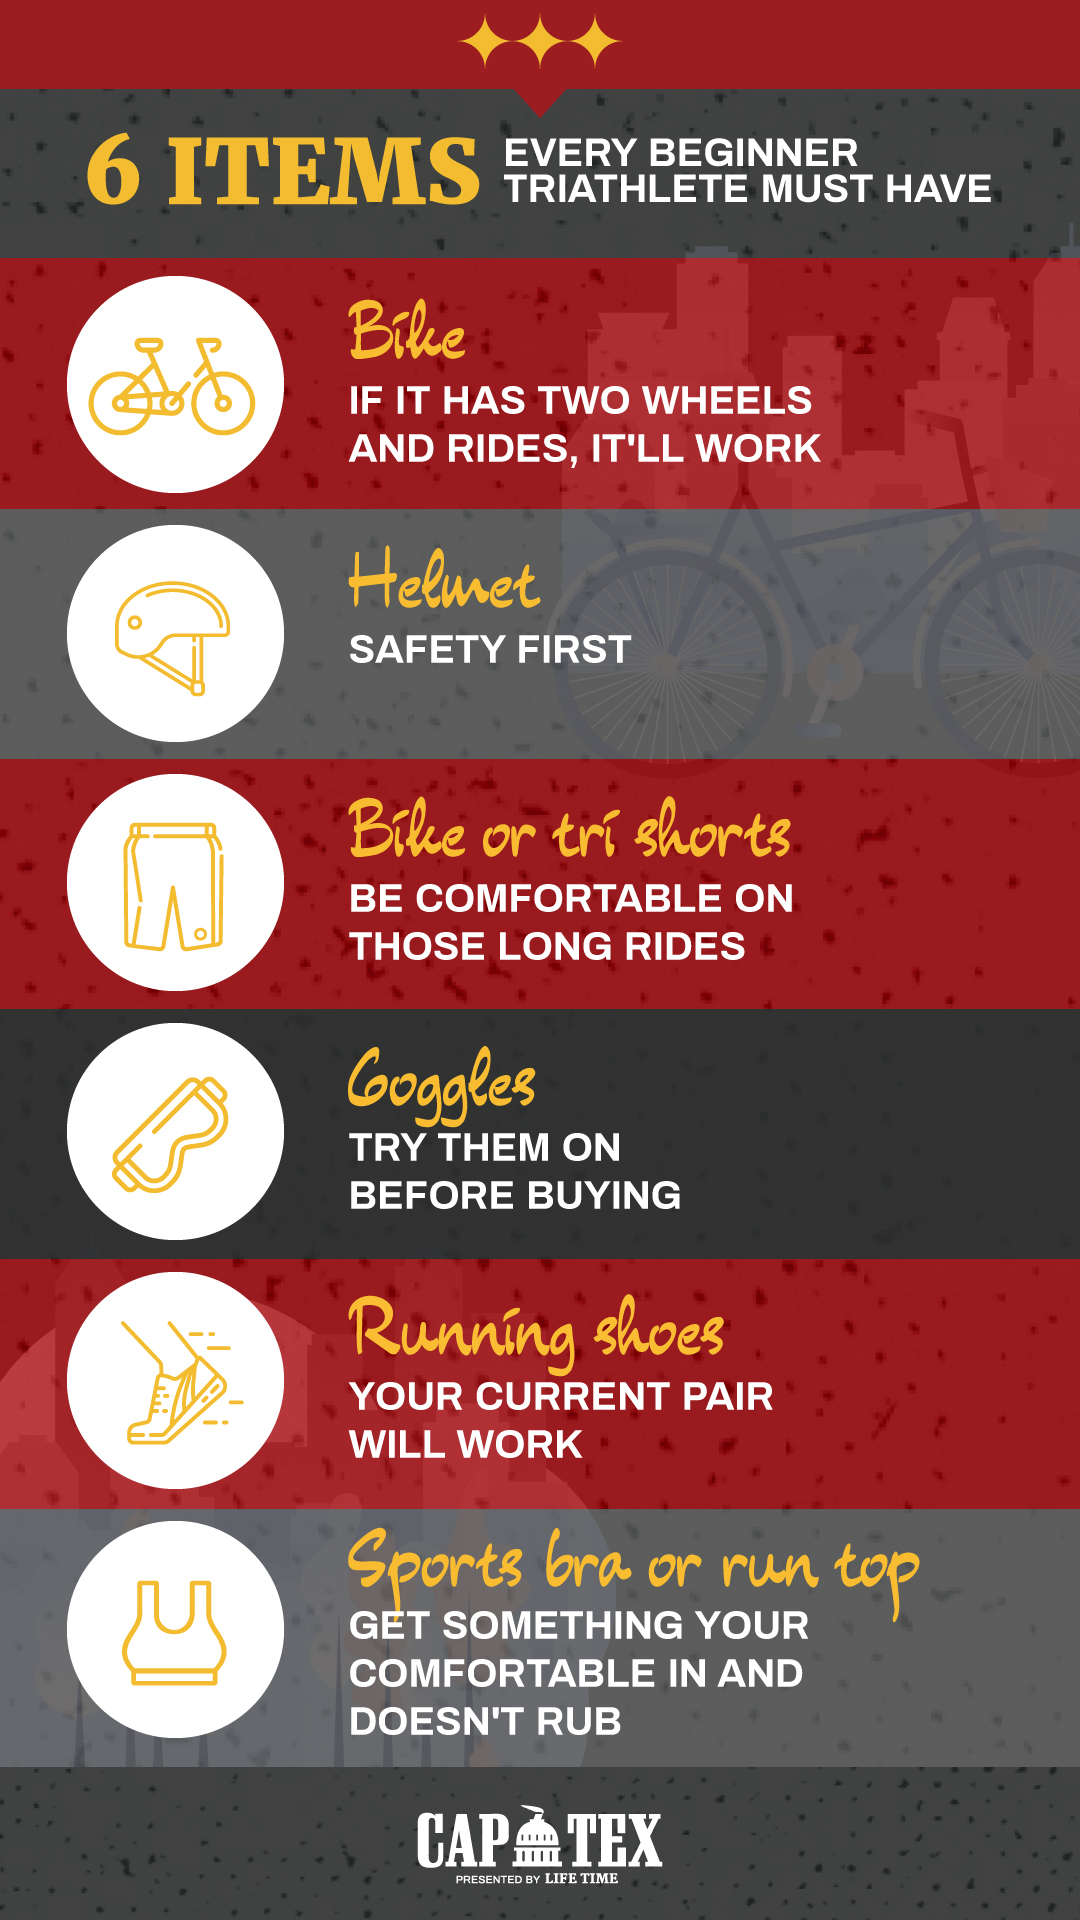 Infographic listing the 6 items every beginner triathlete must have. List includes bike, helmet, tri shorts, goggles, running shoes, and sports bra. Read more at https://captextri.com/6-items-beginner-triathlete/